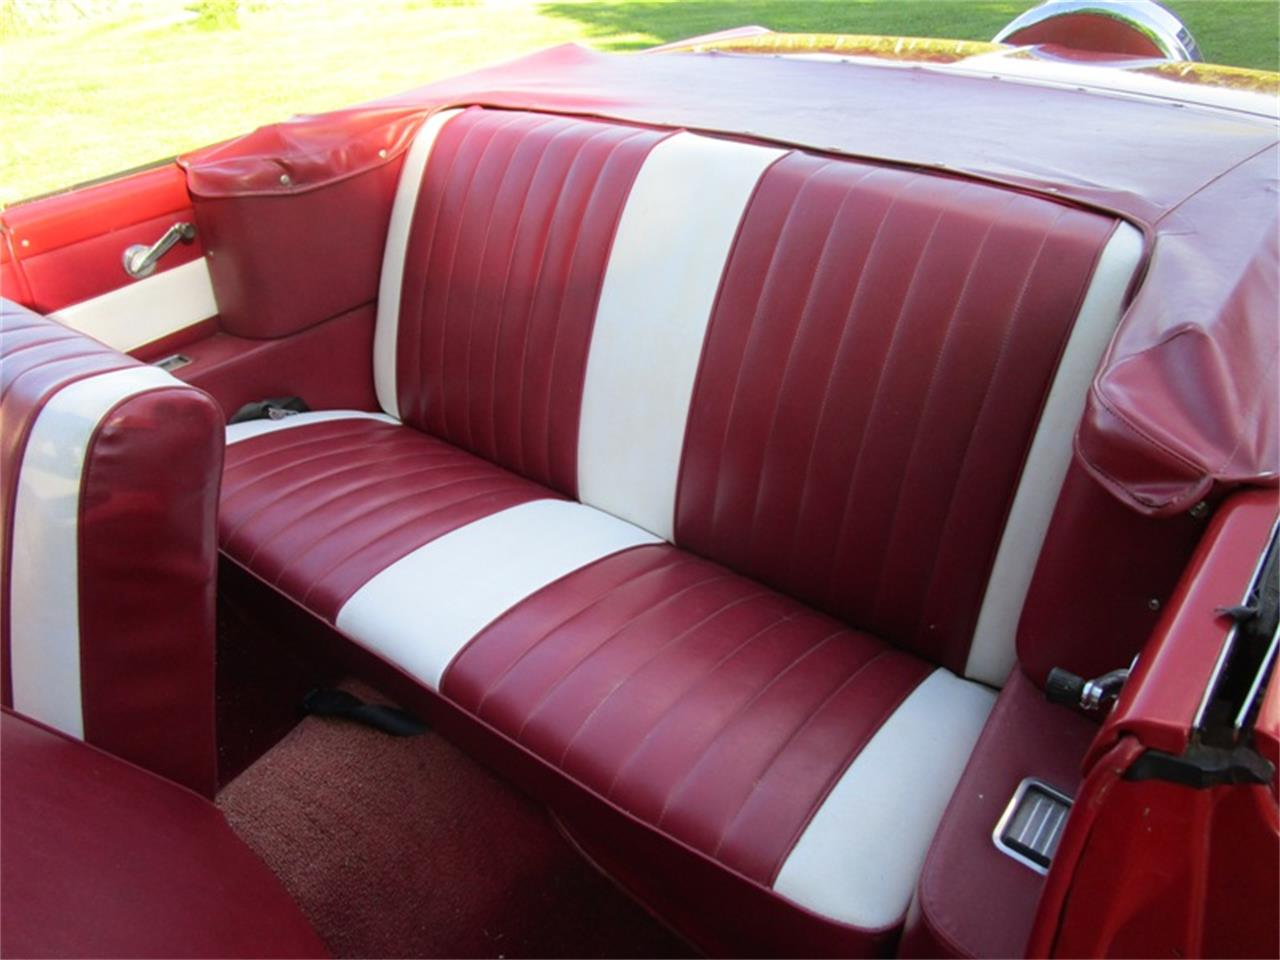 1962 Ford Galaxie 500 Sunliner for sale in Middletown, CT – photo 19